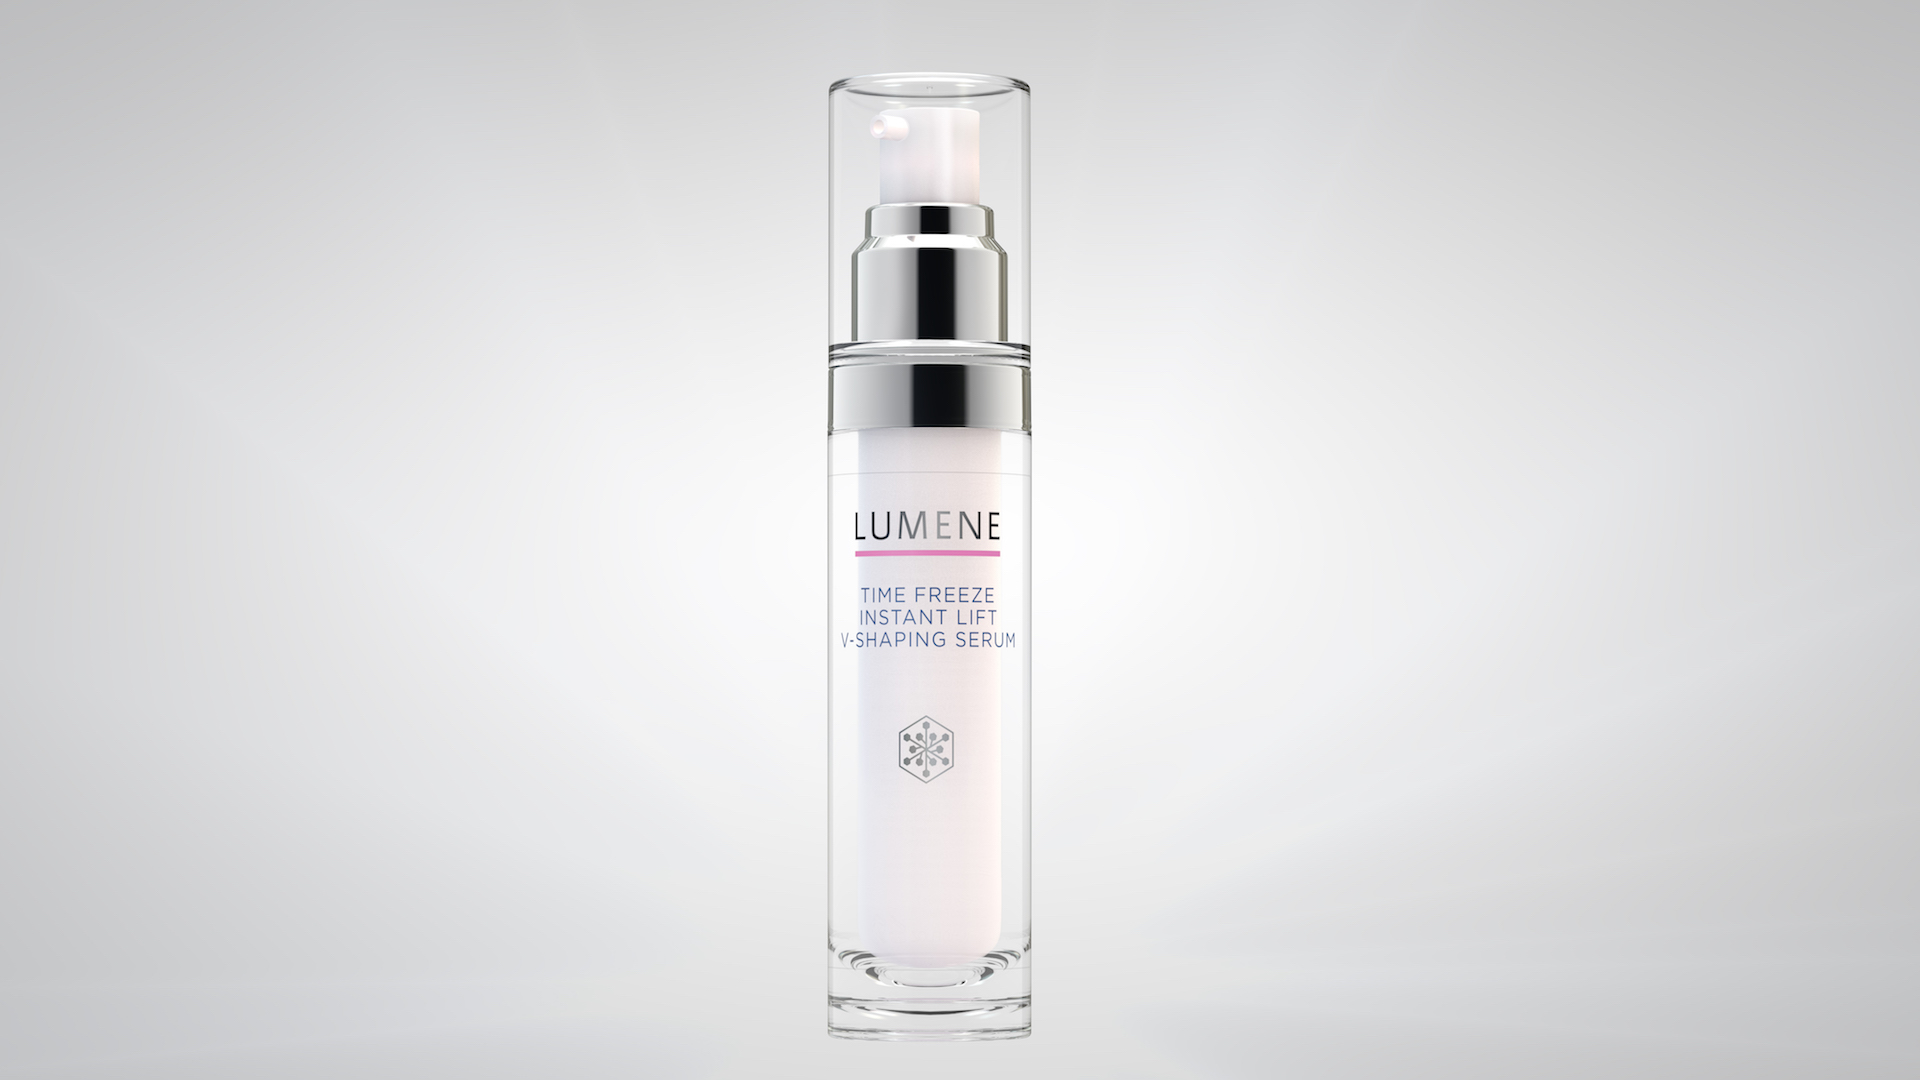 lumene_bottle_layers